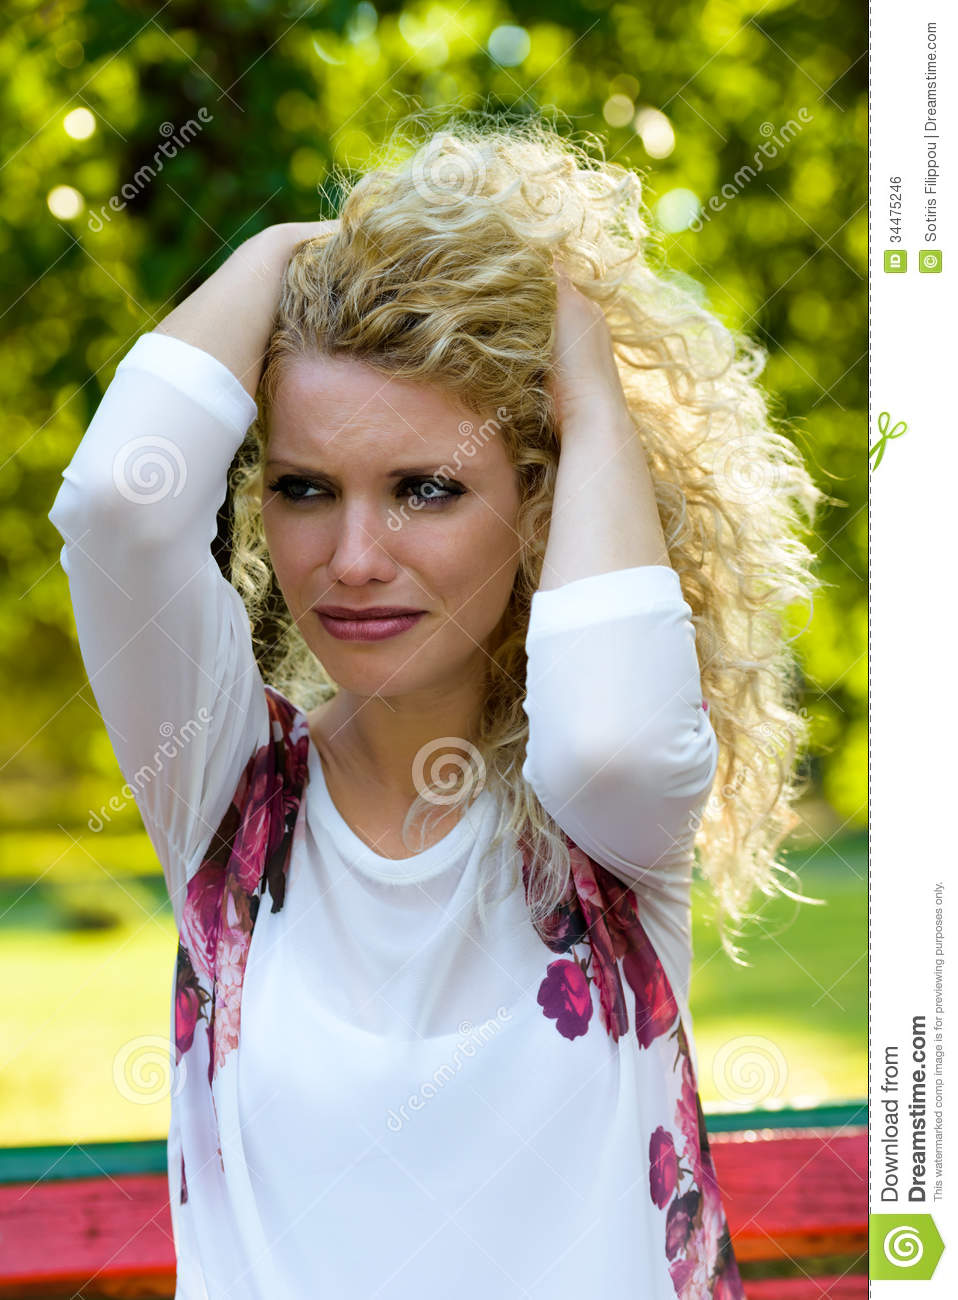 Why Stock Photo Image Of Adult Cute Hair Despair